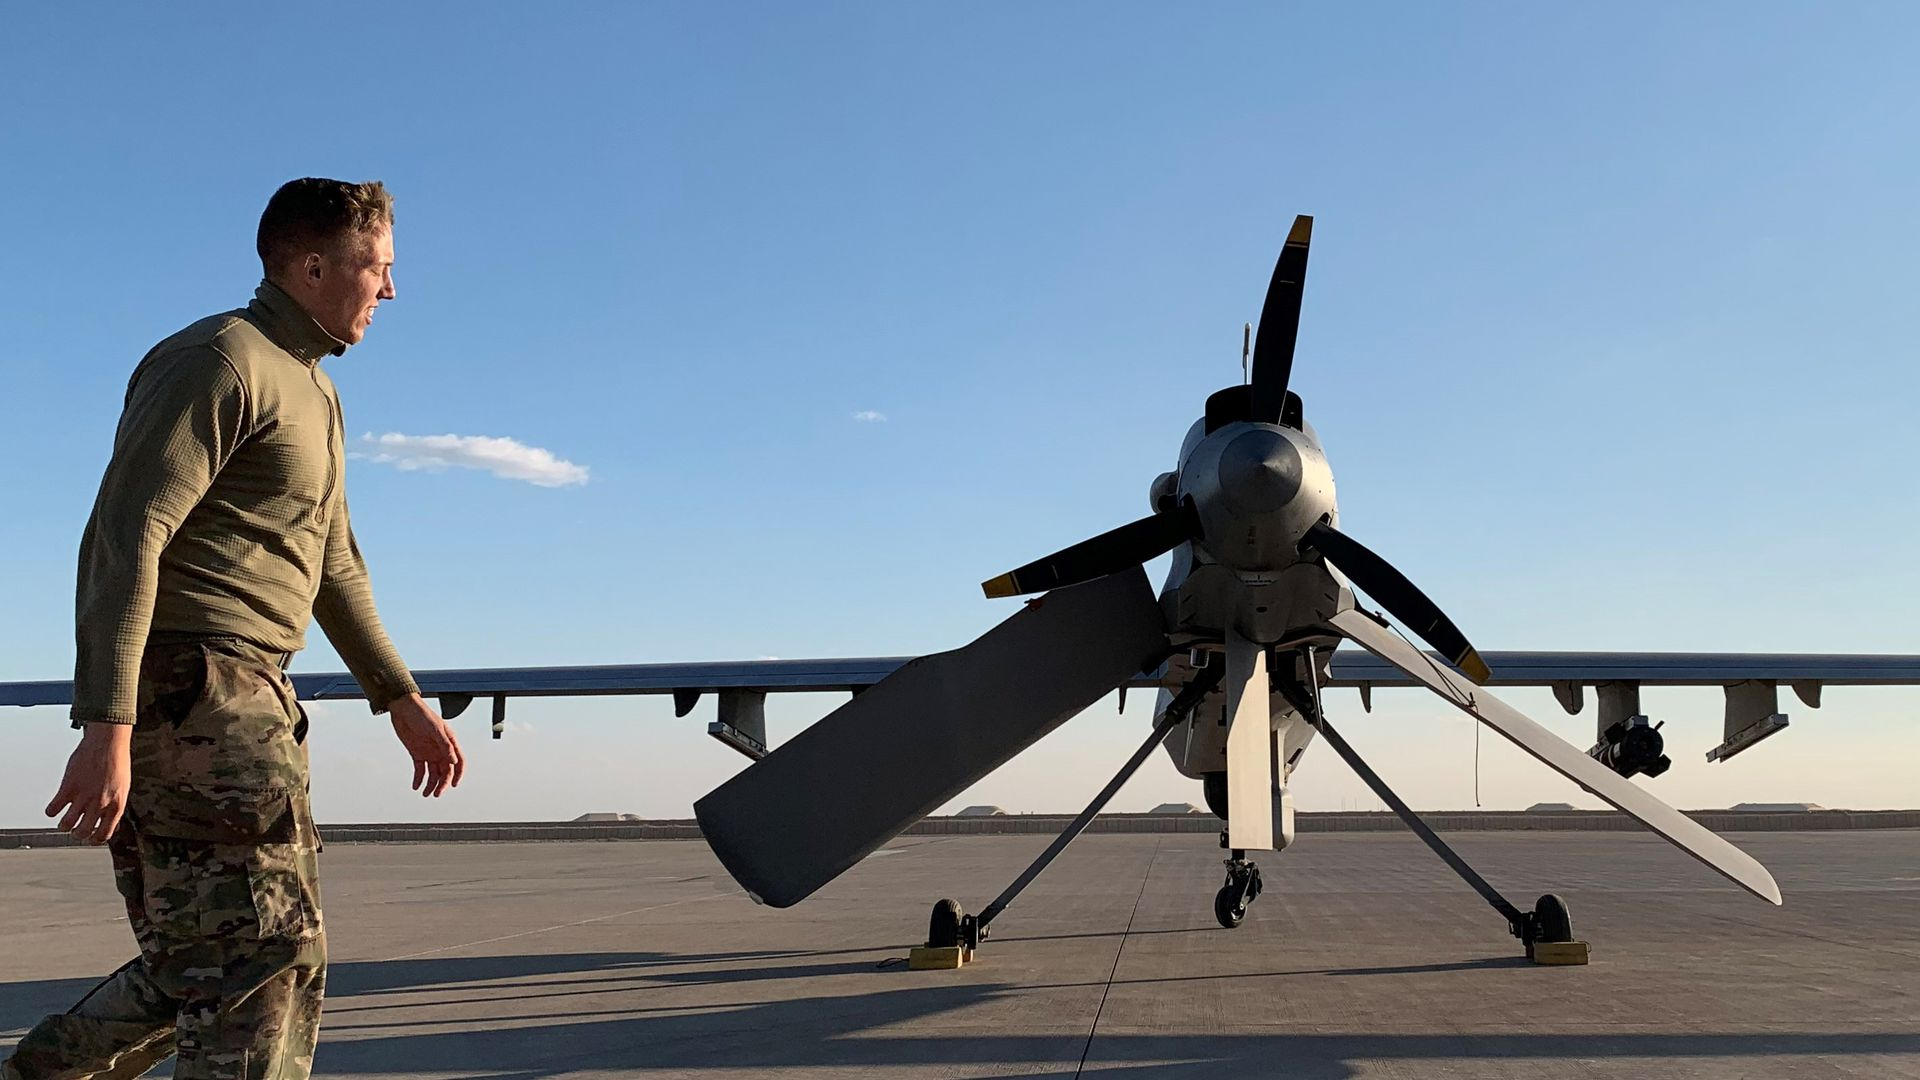 In this image, a US soldier in Iraq walks past a military plane